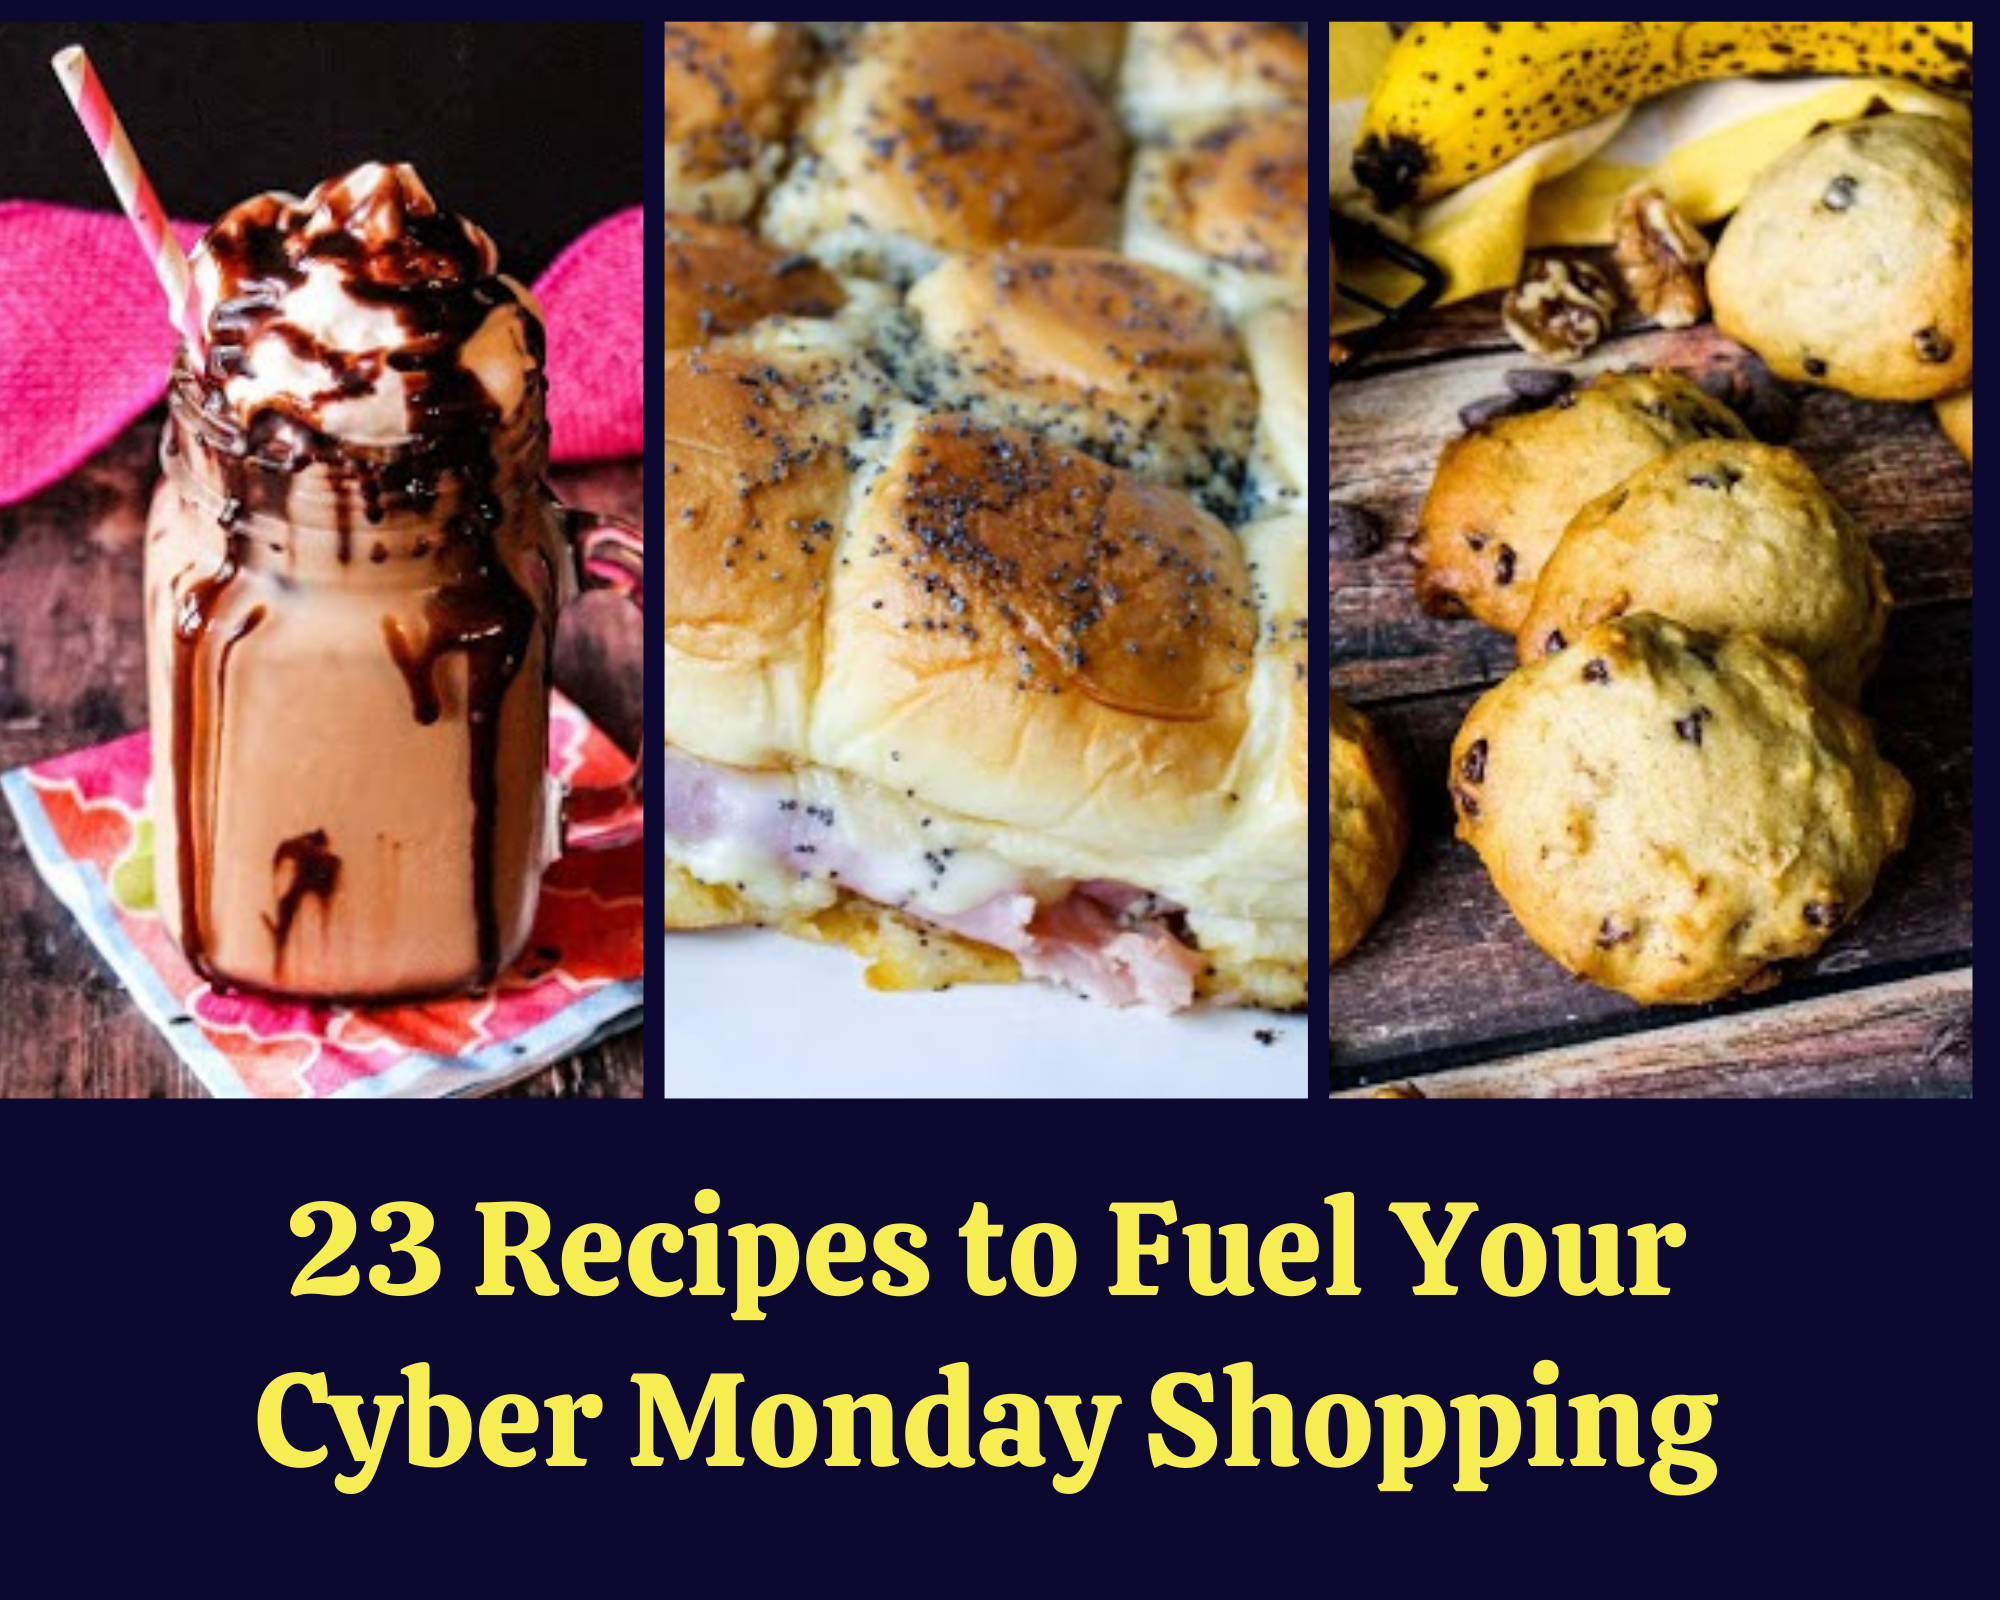 recipes for cyber Monday